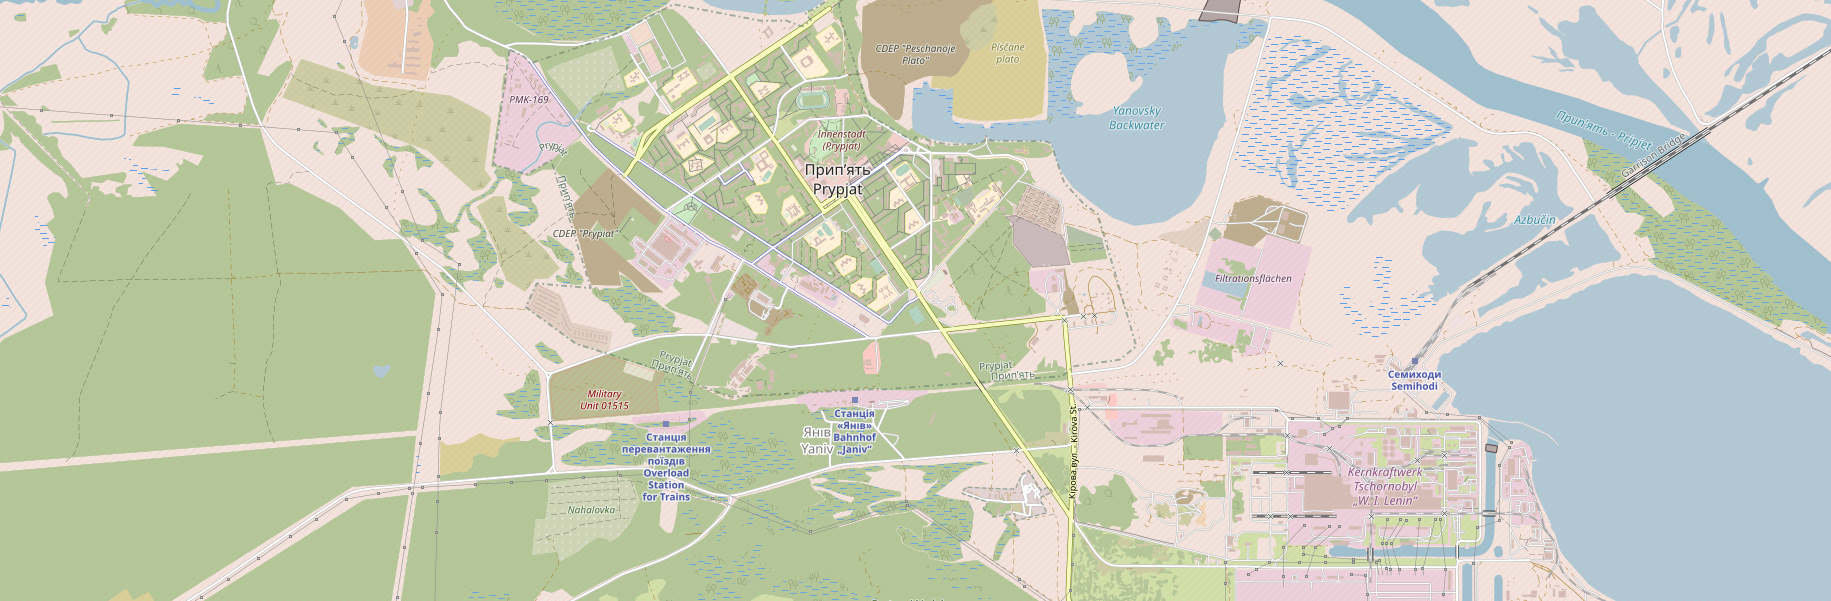 osm map of Chernobyl